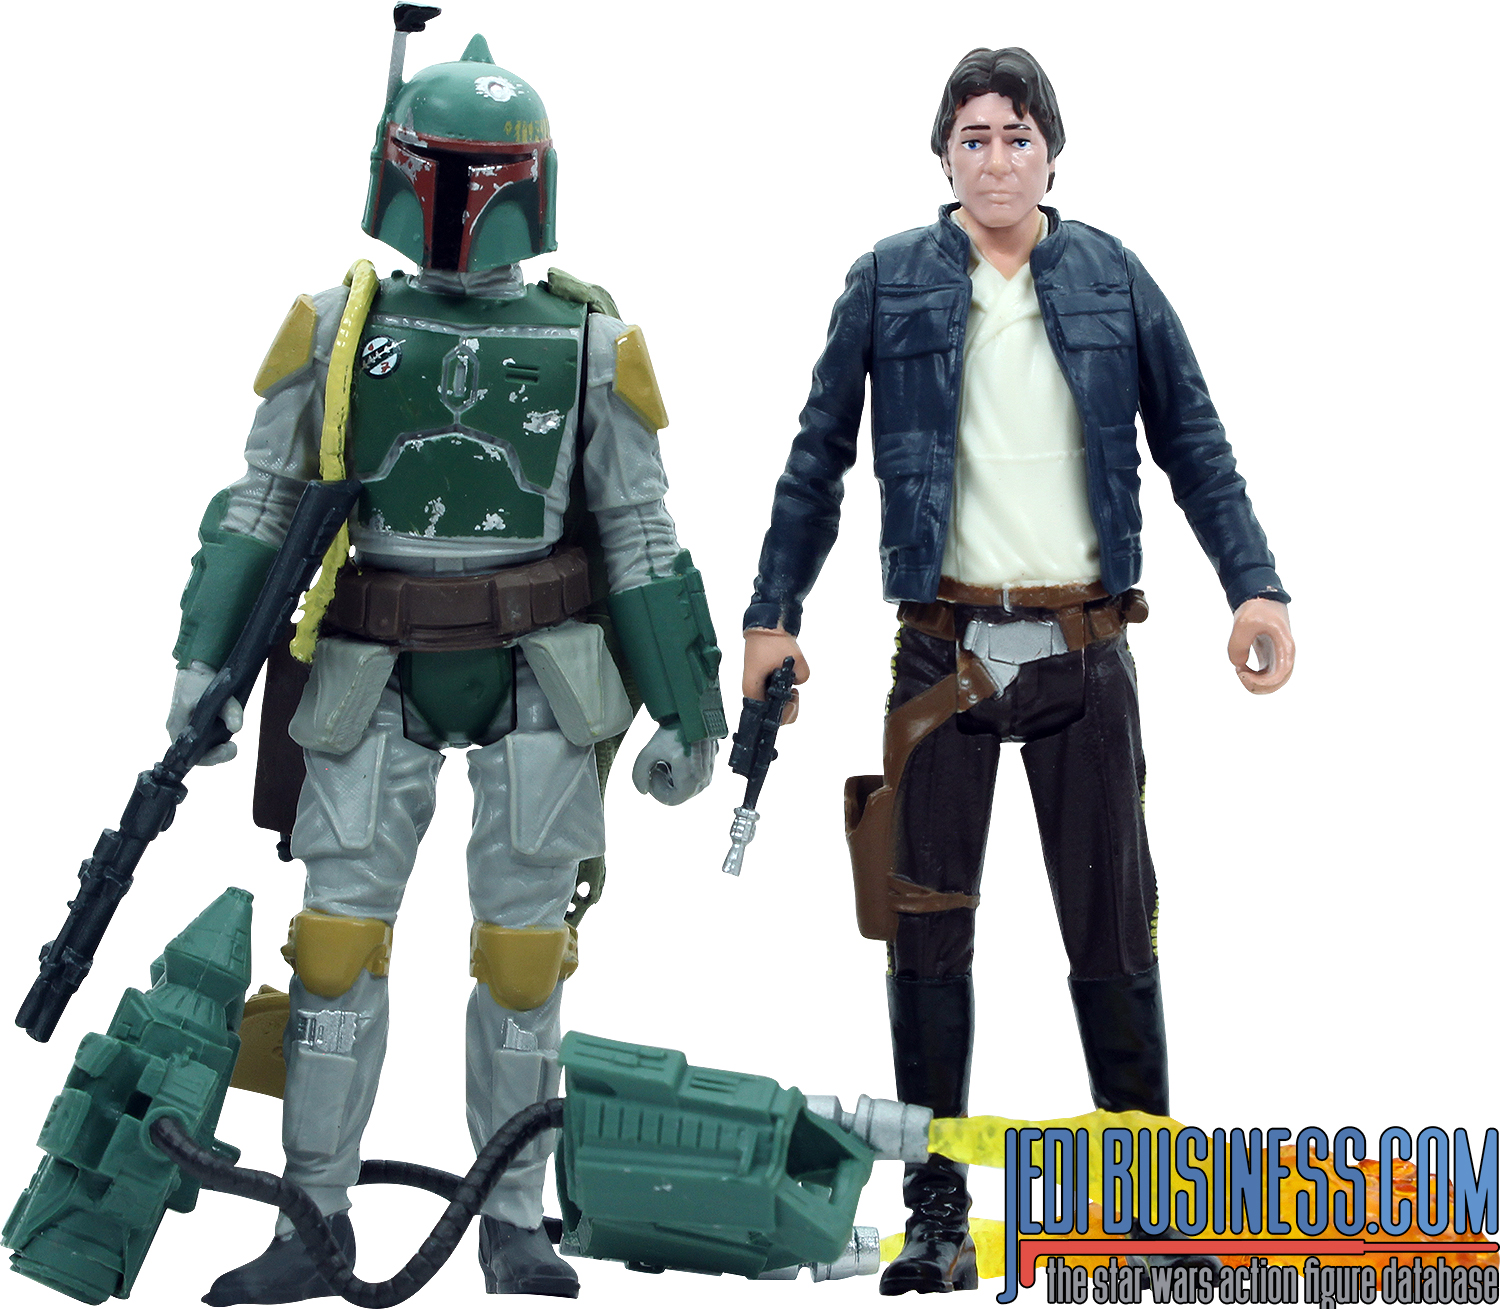 Boba Fett, 2-Pack #2 With Han Solo (Bespin)